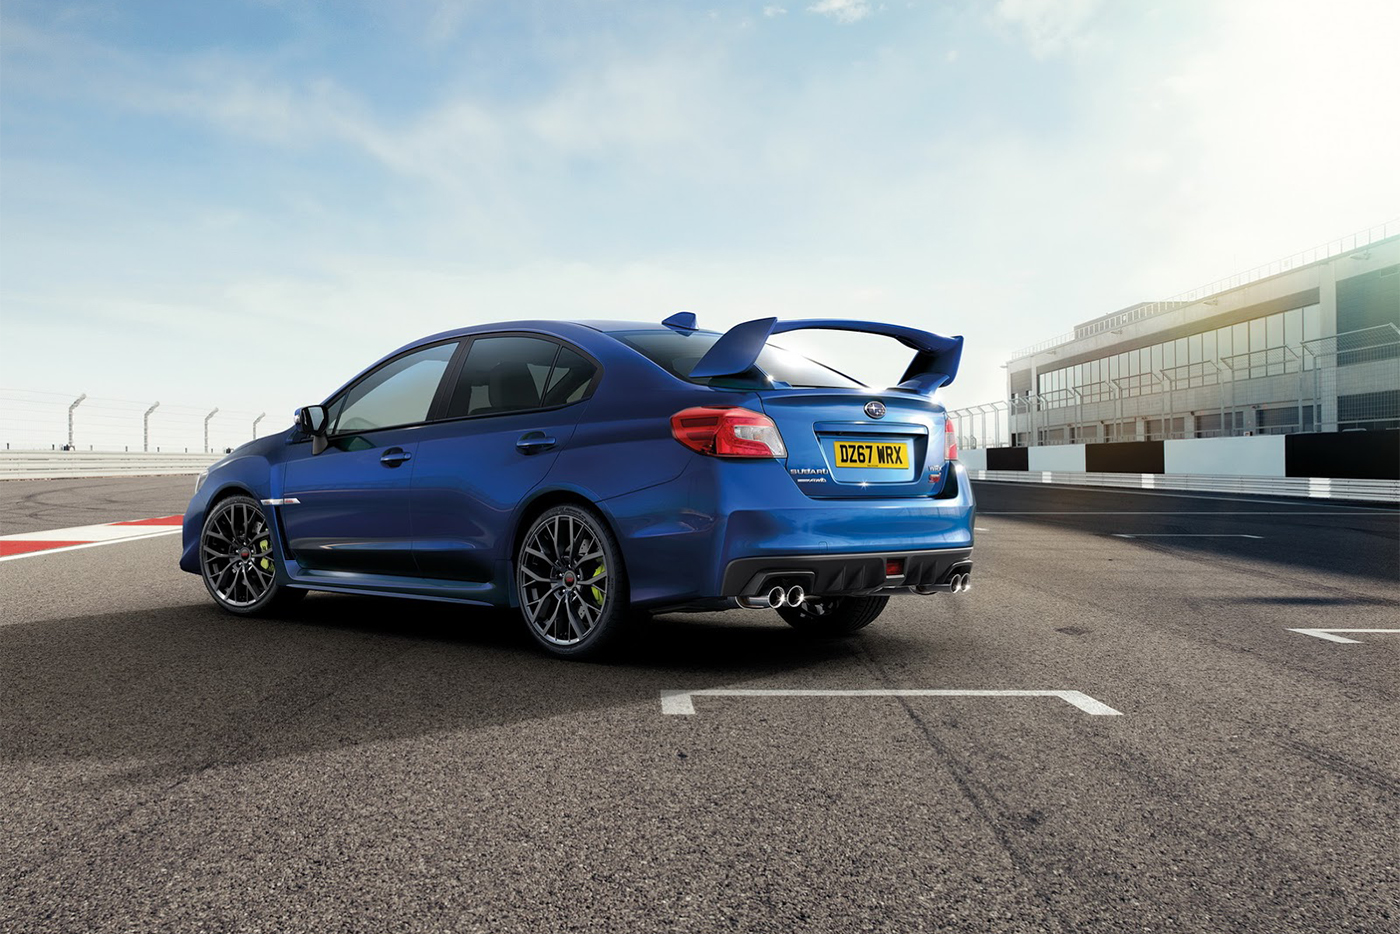 subaru-wrx-sti-final-edition-3.jpg